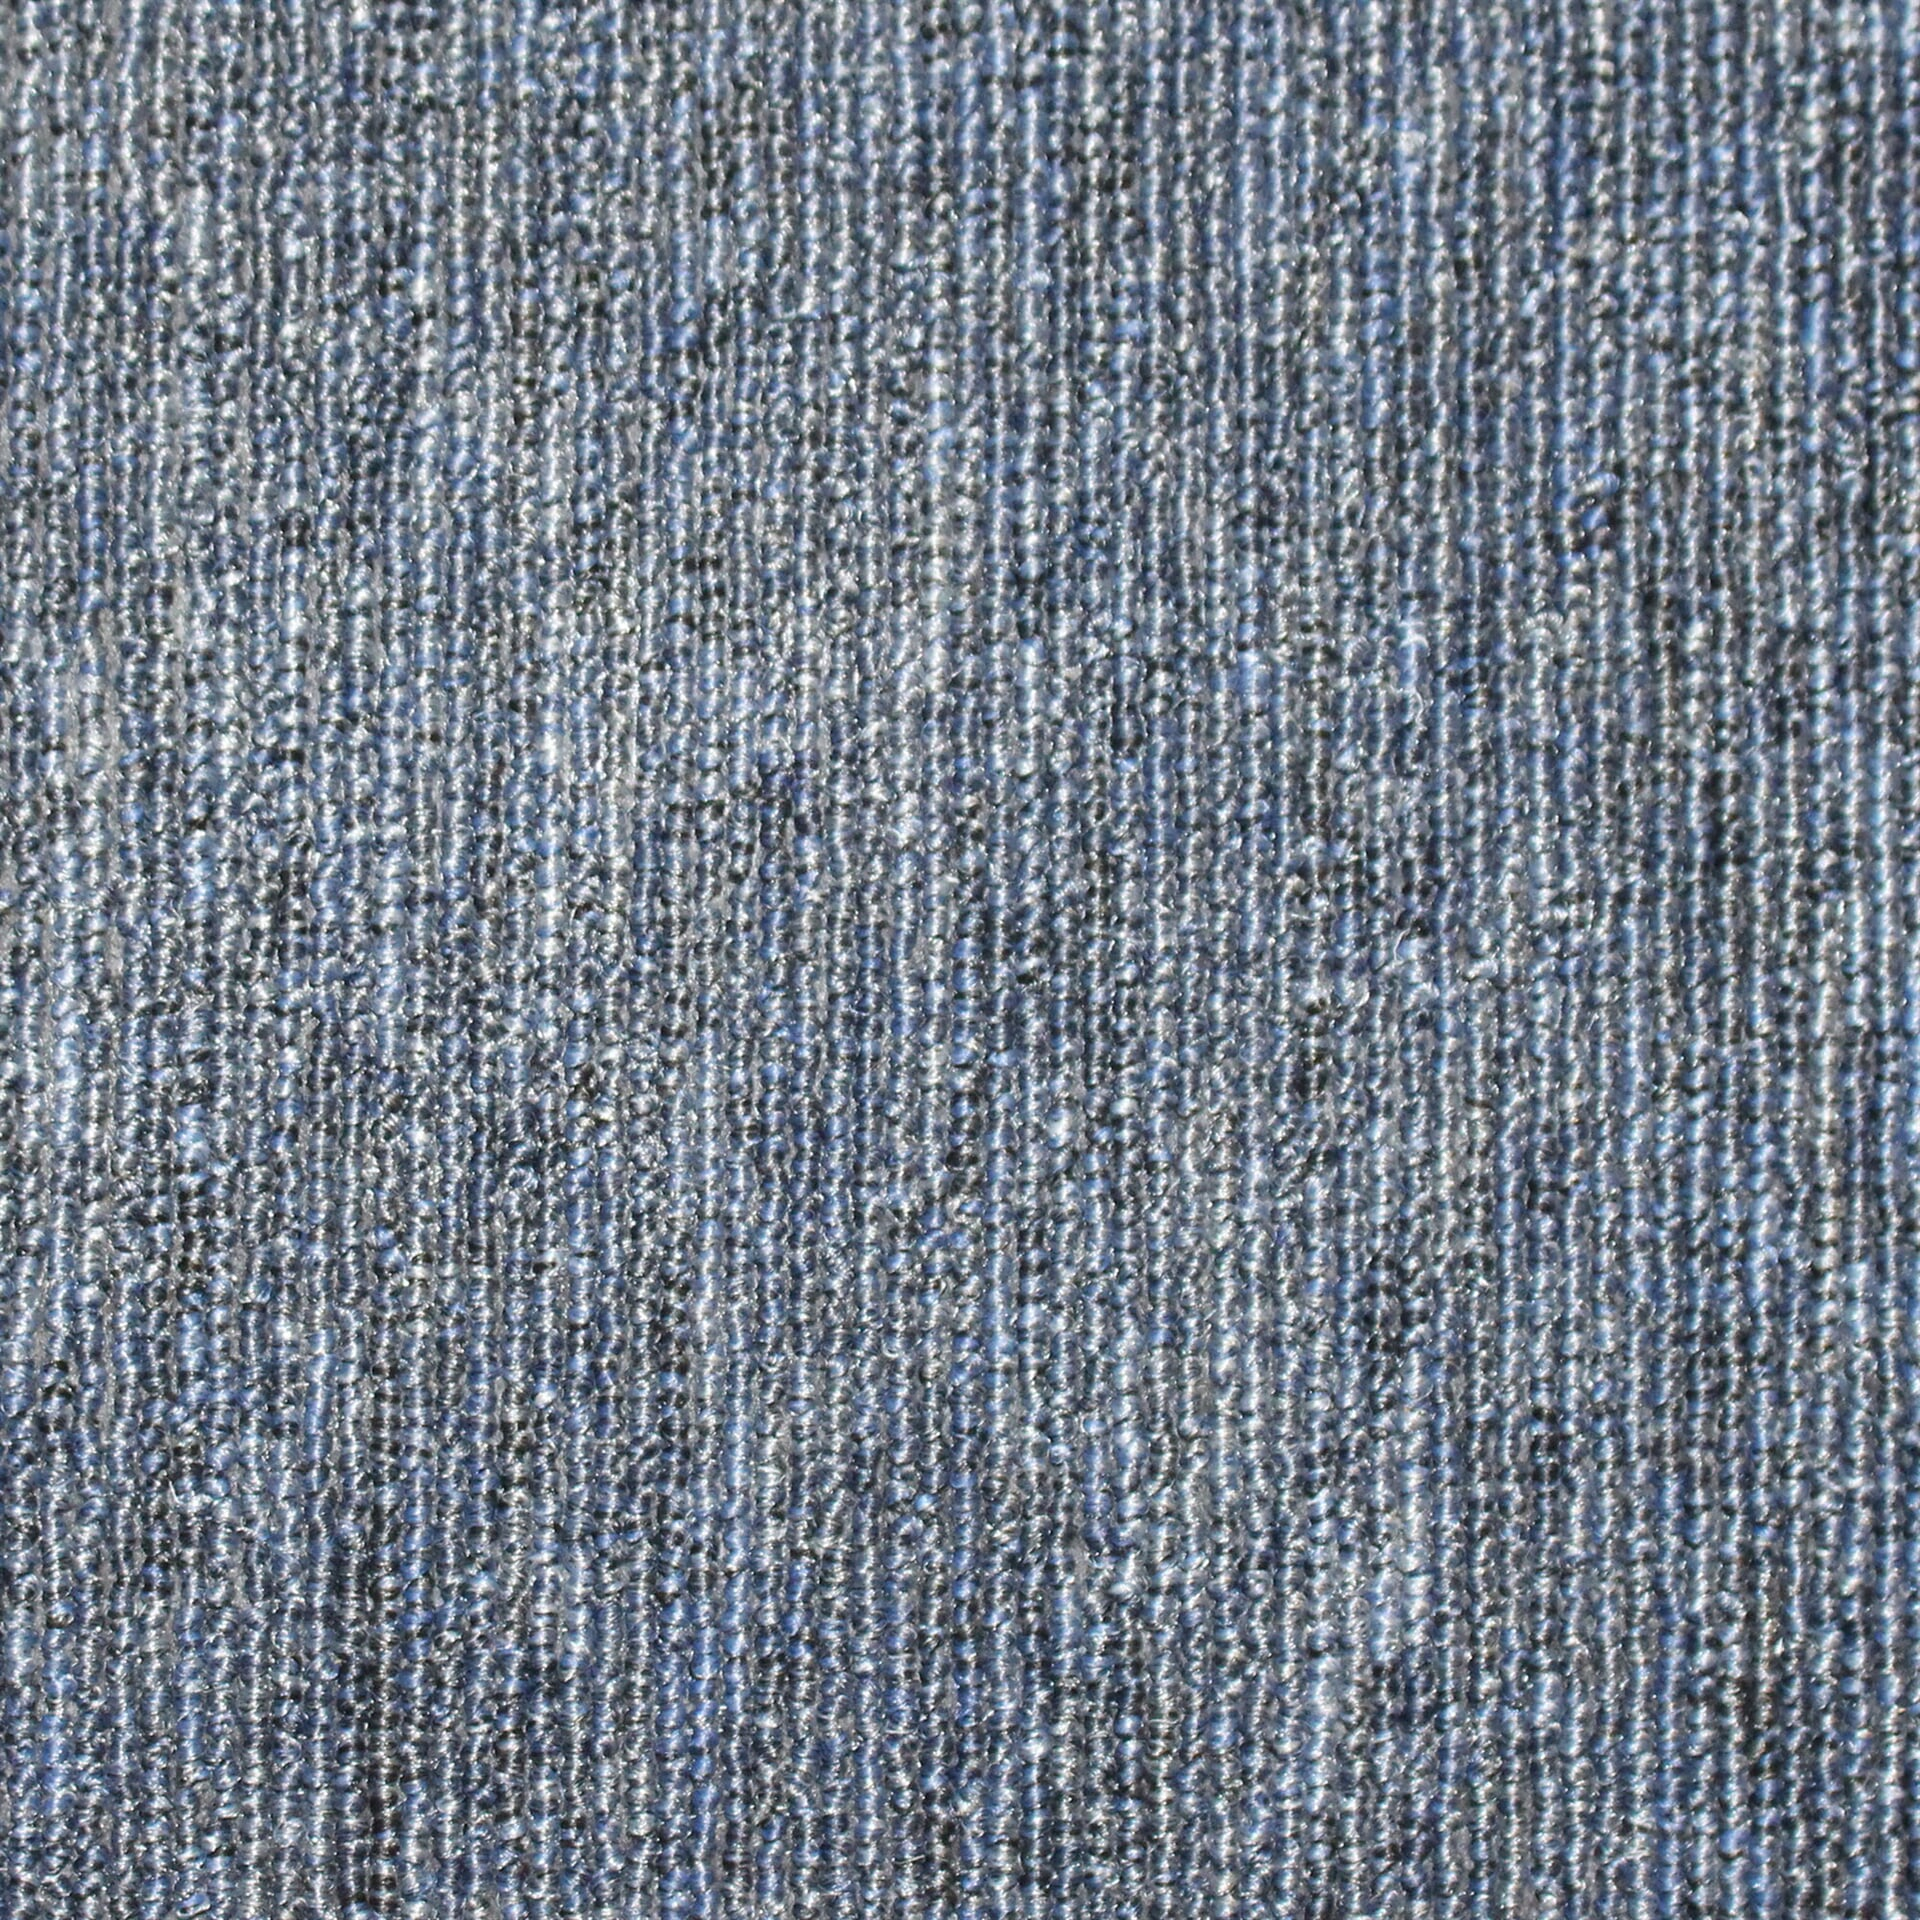 Genstock Align carpet in Pewter from MP Contract Flooring